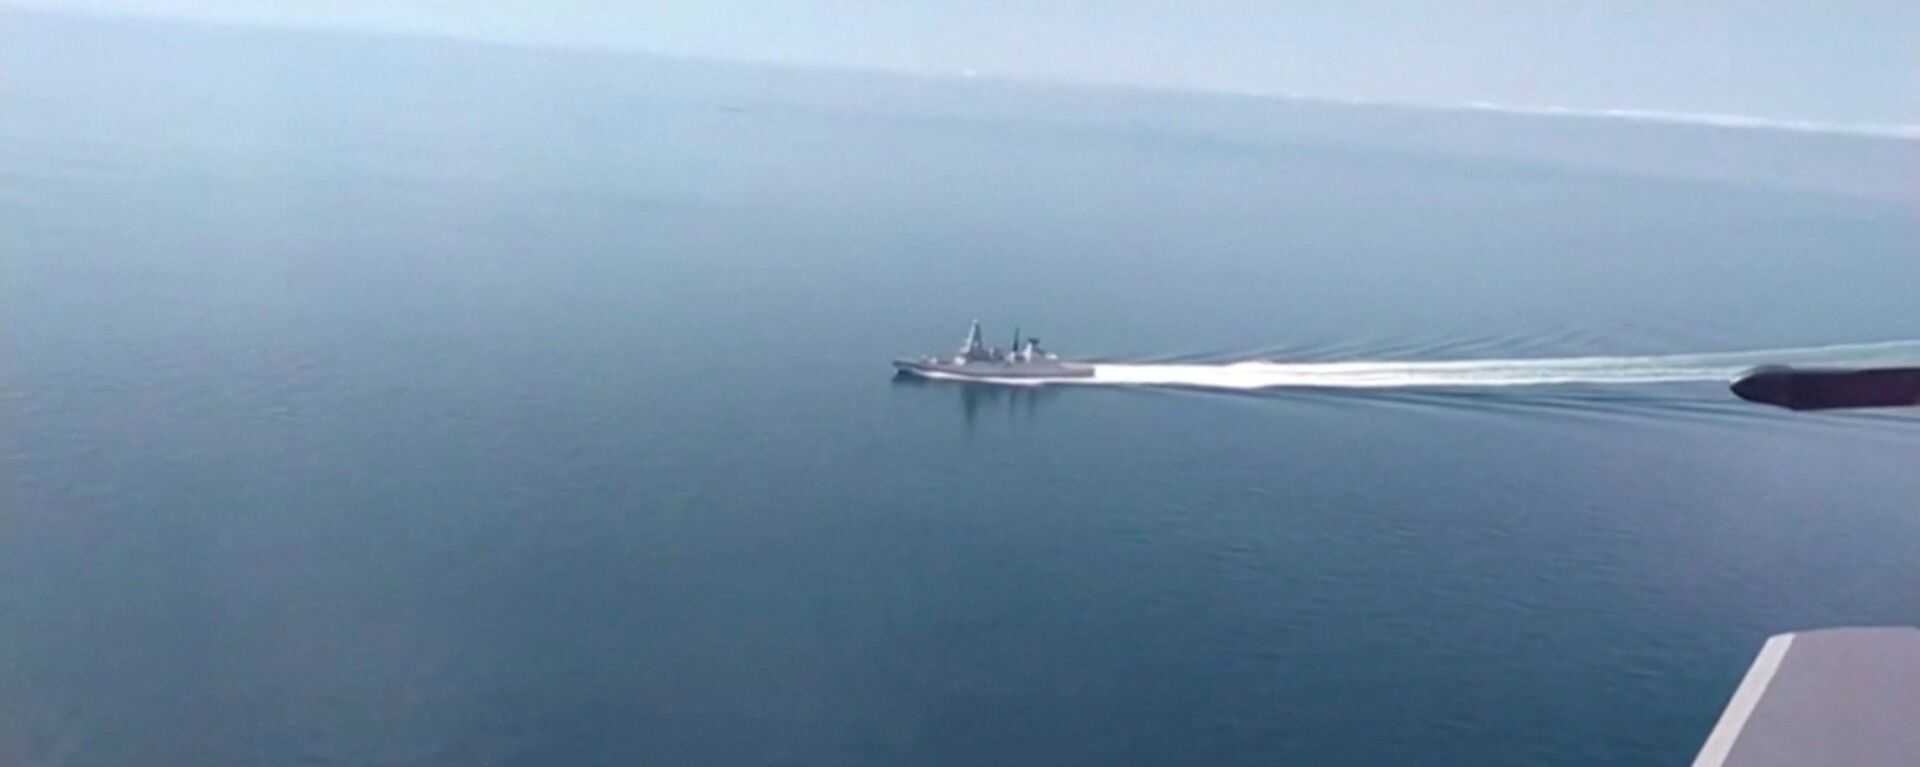 A still image taken from a video released by Russia's Defence Ministry allegedly shows British Royal Navy's Type 45 destroyer HMS Defender filmed from a Russian military aircraft in the Black Sea, June 23, 2021 - Sputnik International, 1920, 27.06.2021